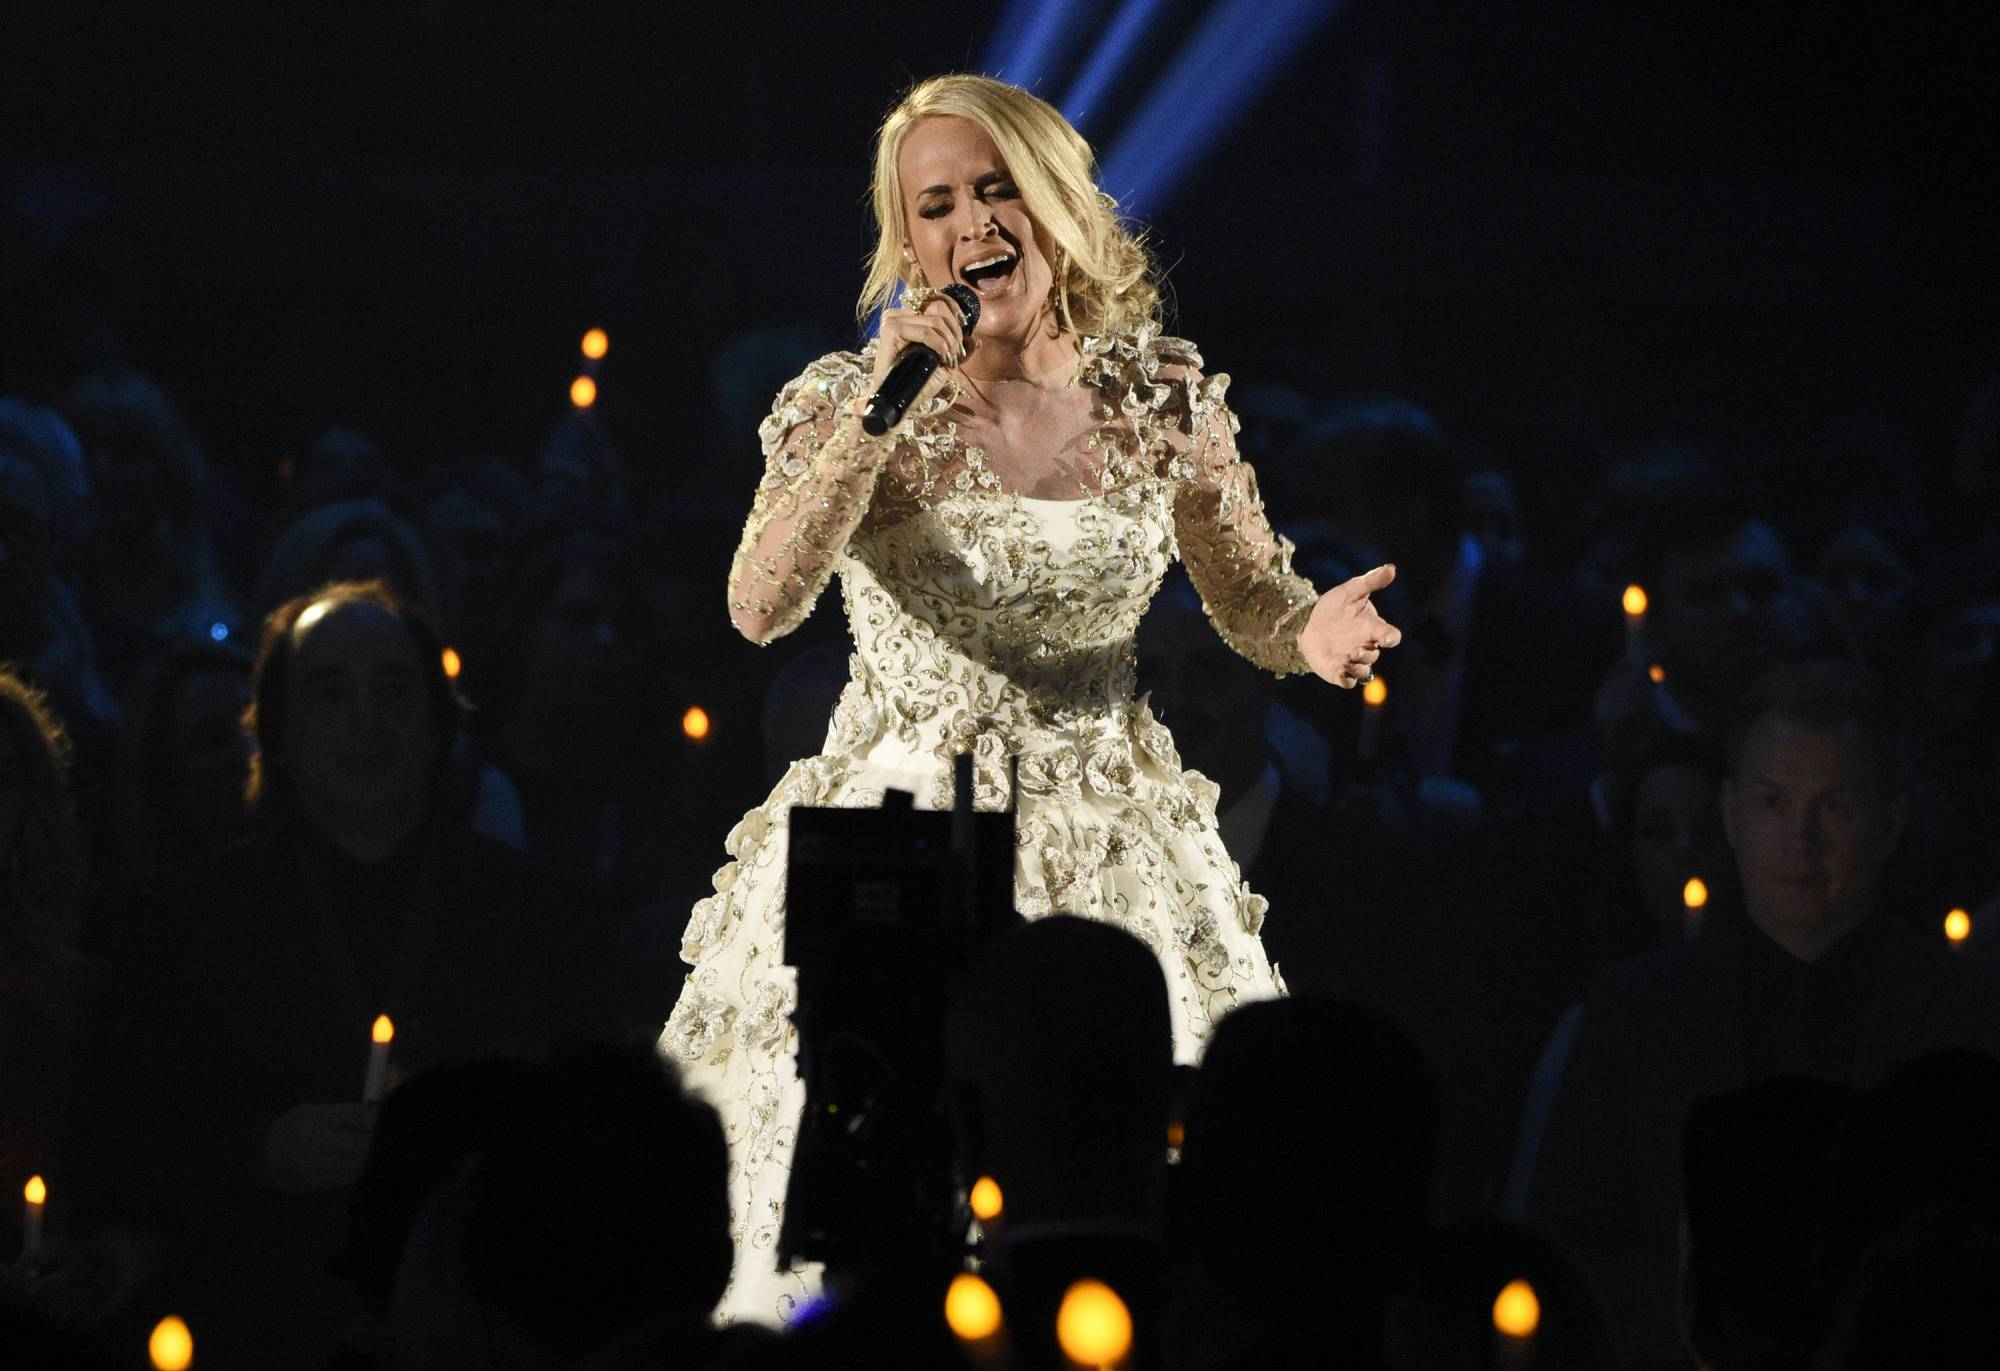 Singer carrie underwood recuperating after fall at home wtop for Carrie underwood softly and tenderly